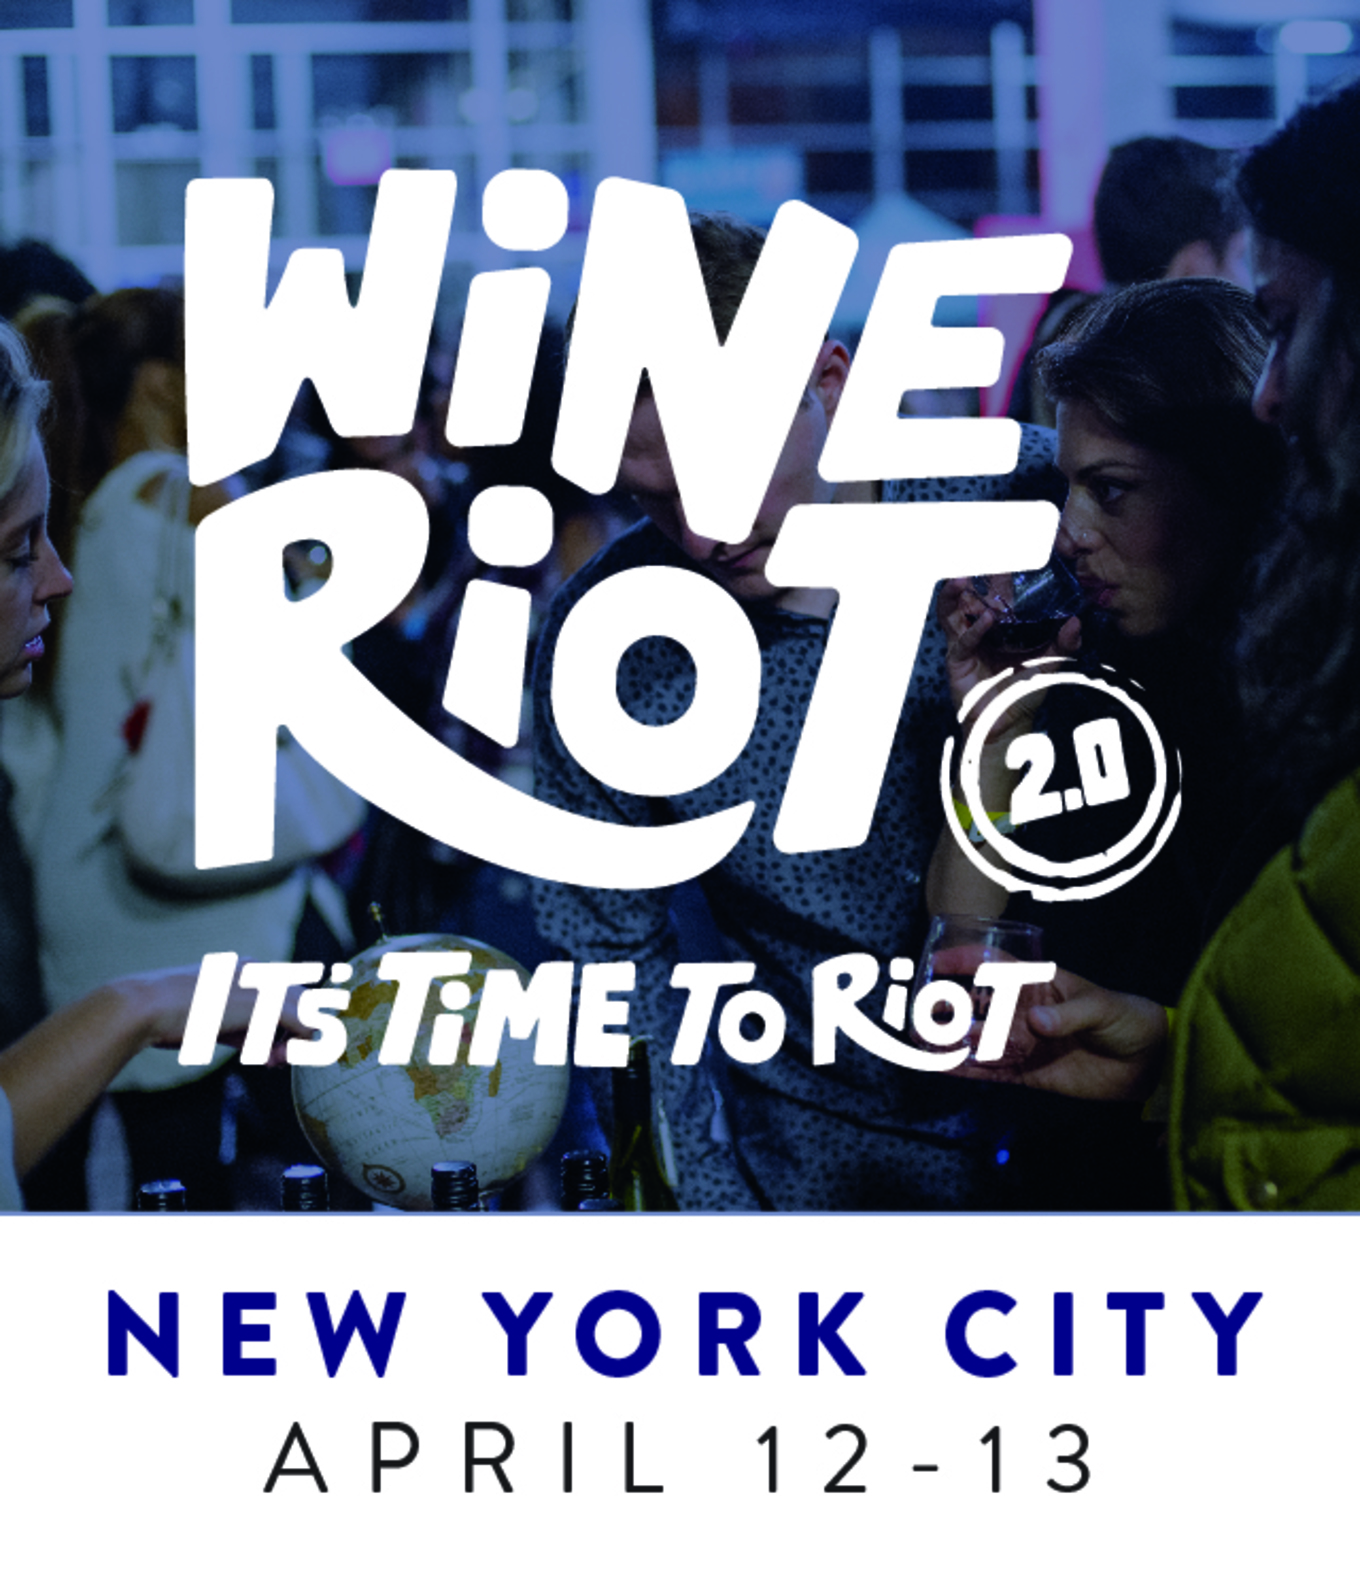 Wine & Food Events for New York City